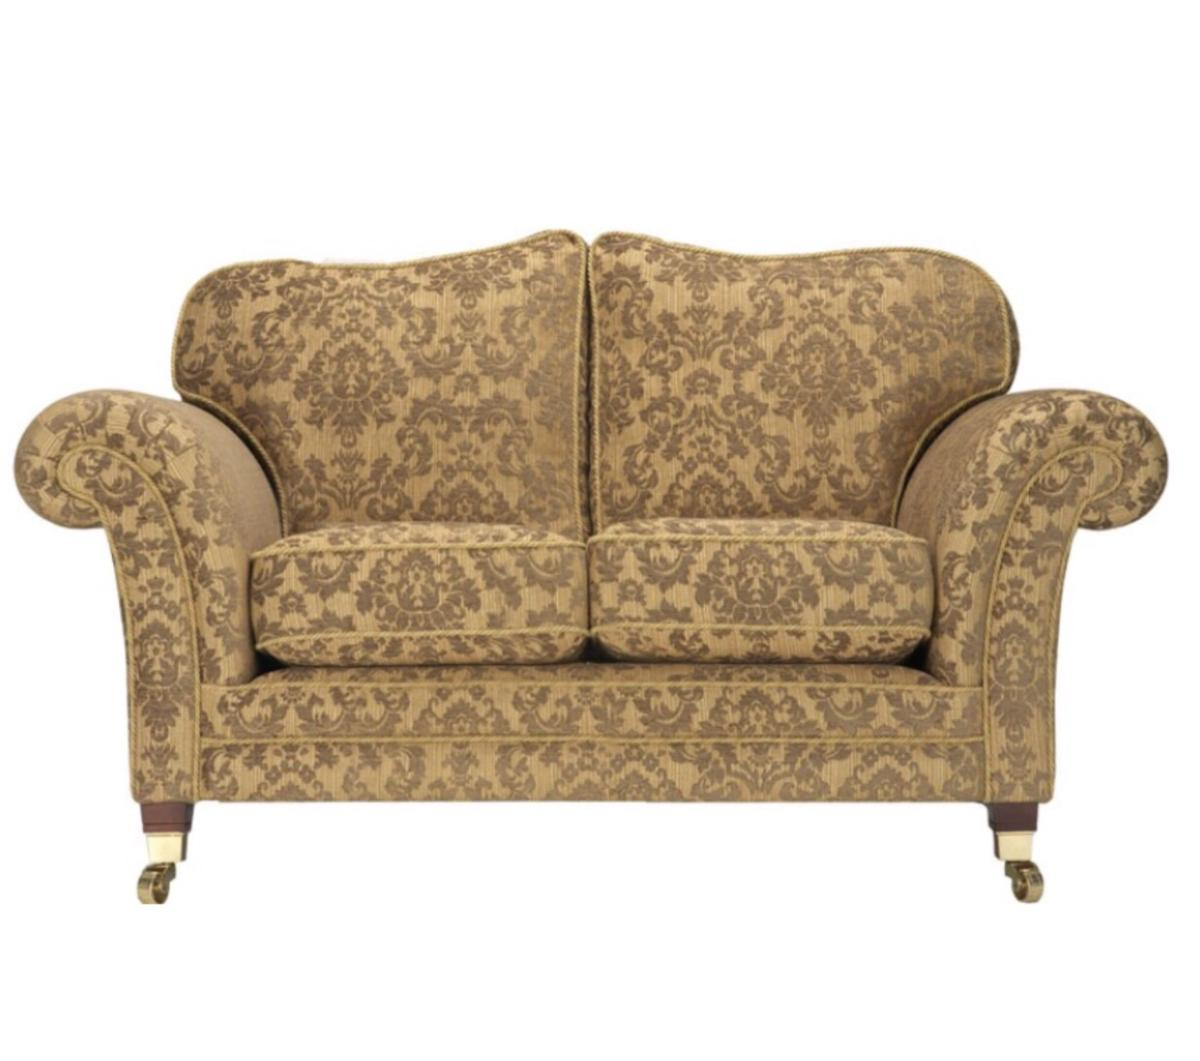 Astounding Laura Ashley Style Sofa And Chairs In La5 Lancaster For Onthecornerstone Fun Painted Chair Ideas Images Onthecornerstoneorg